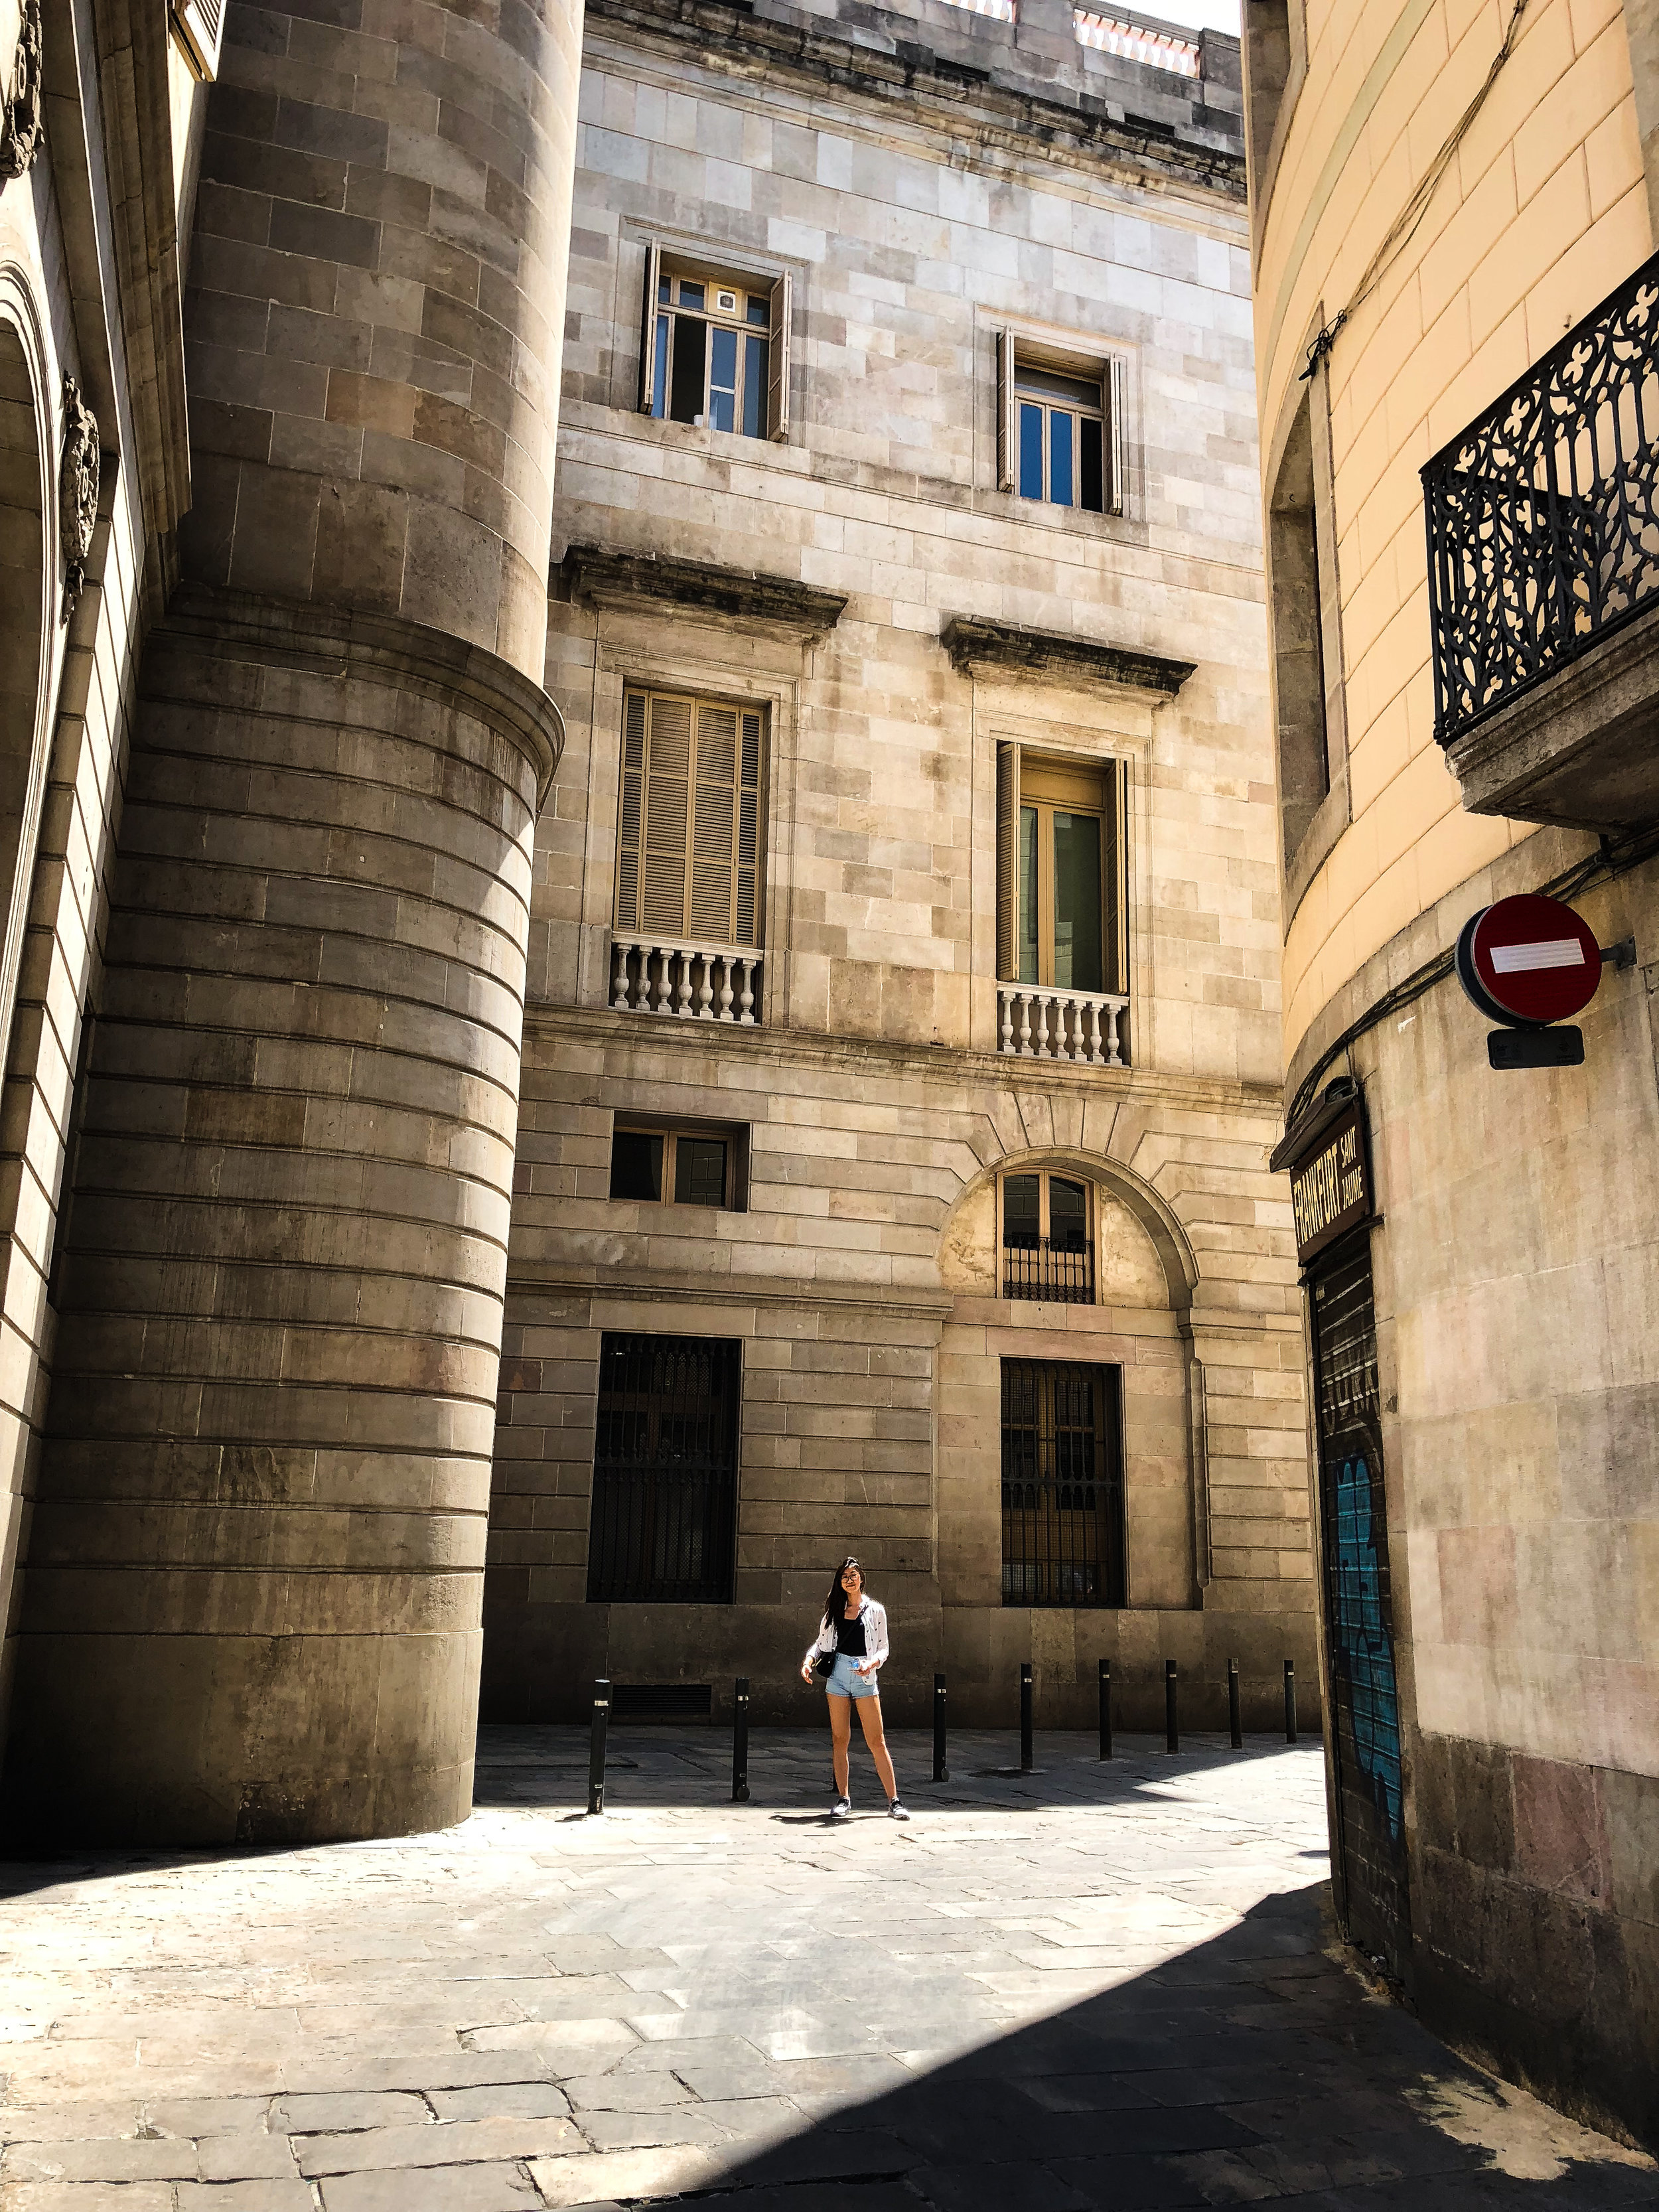 The granny's guide to Barcelona - July 2018